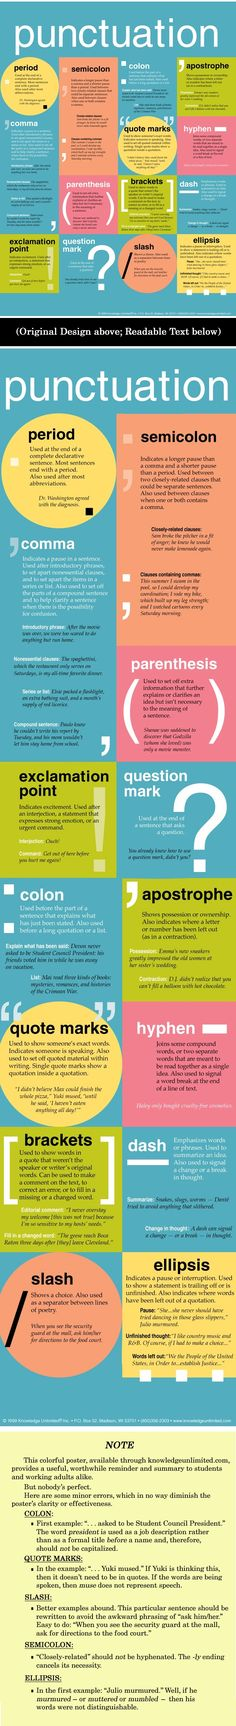 Punctuation in English Teaching Writing, Writing Help, Writing Skills, Writing Tips, Essay Writing, Academic Writing, Writing Resources, Writing Services, English Writing